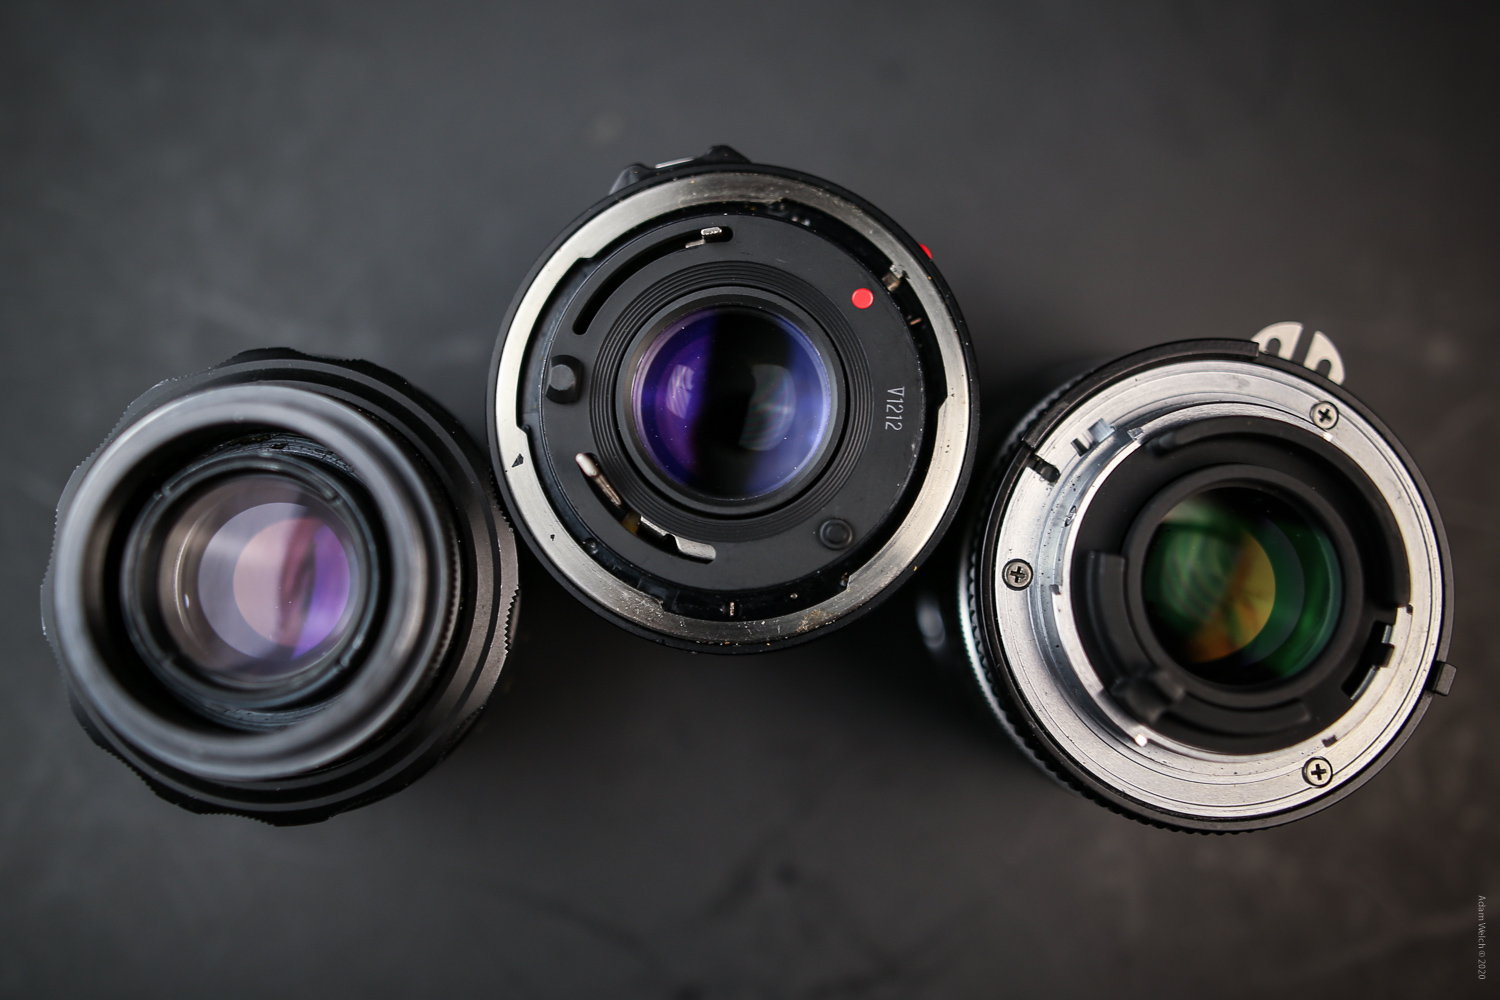 Different lens mounts of old lenses